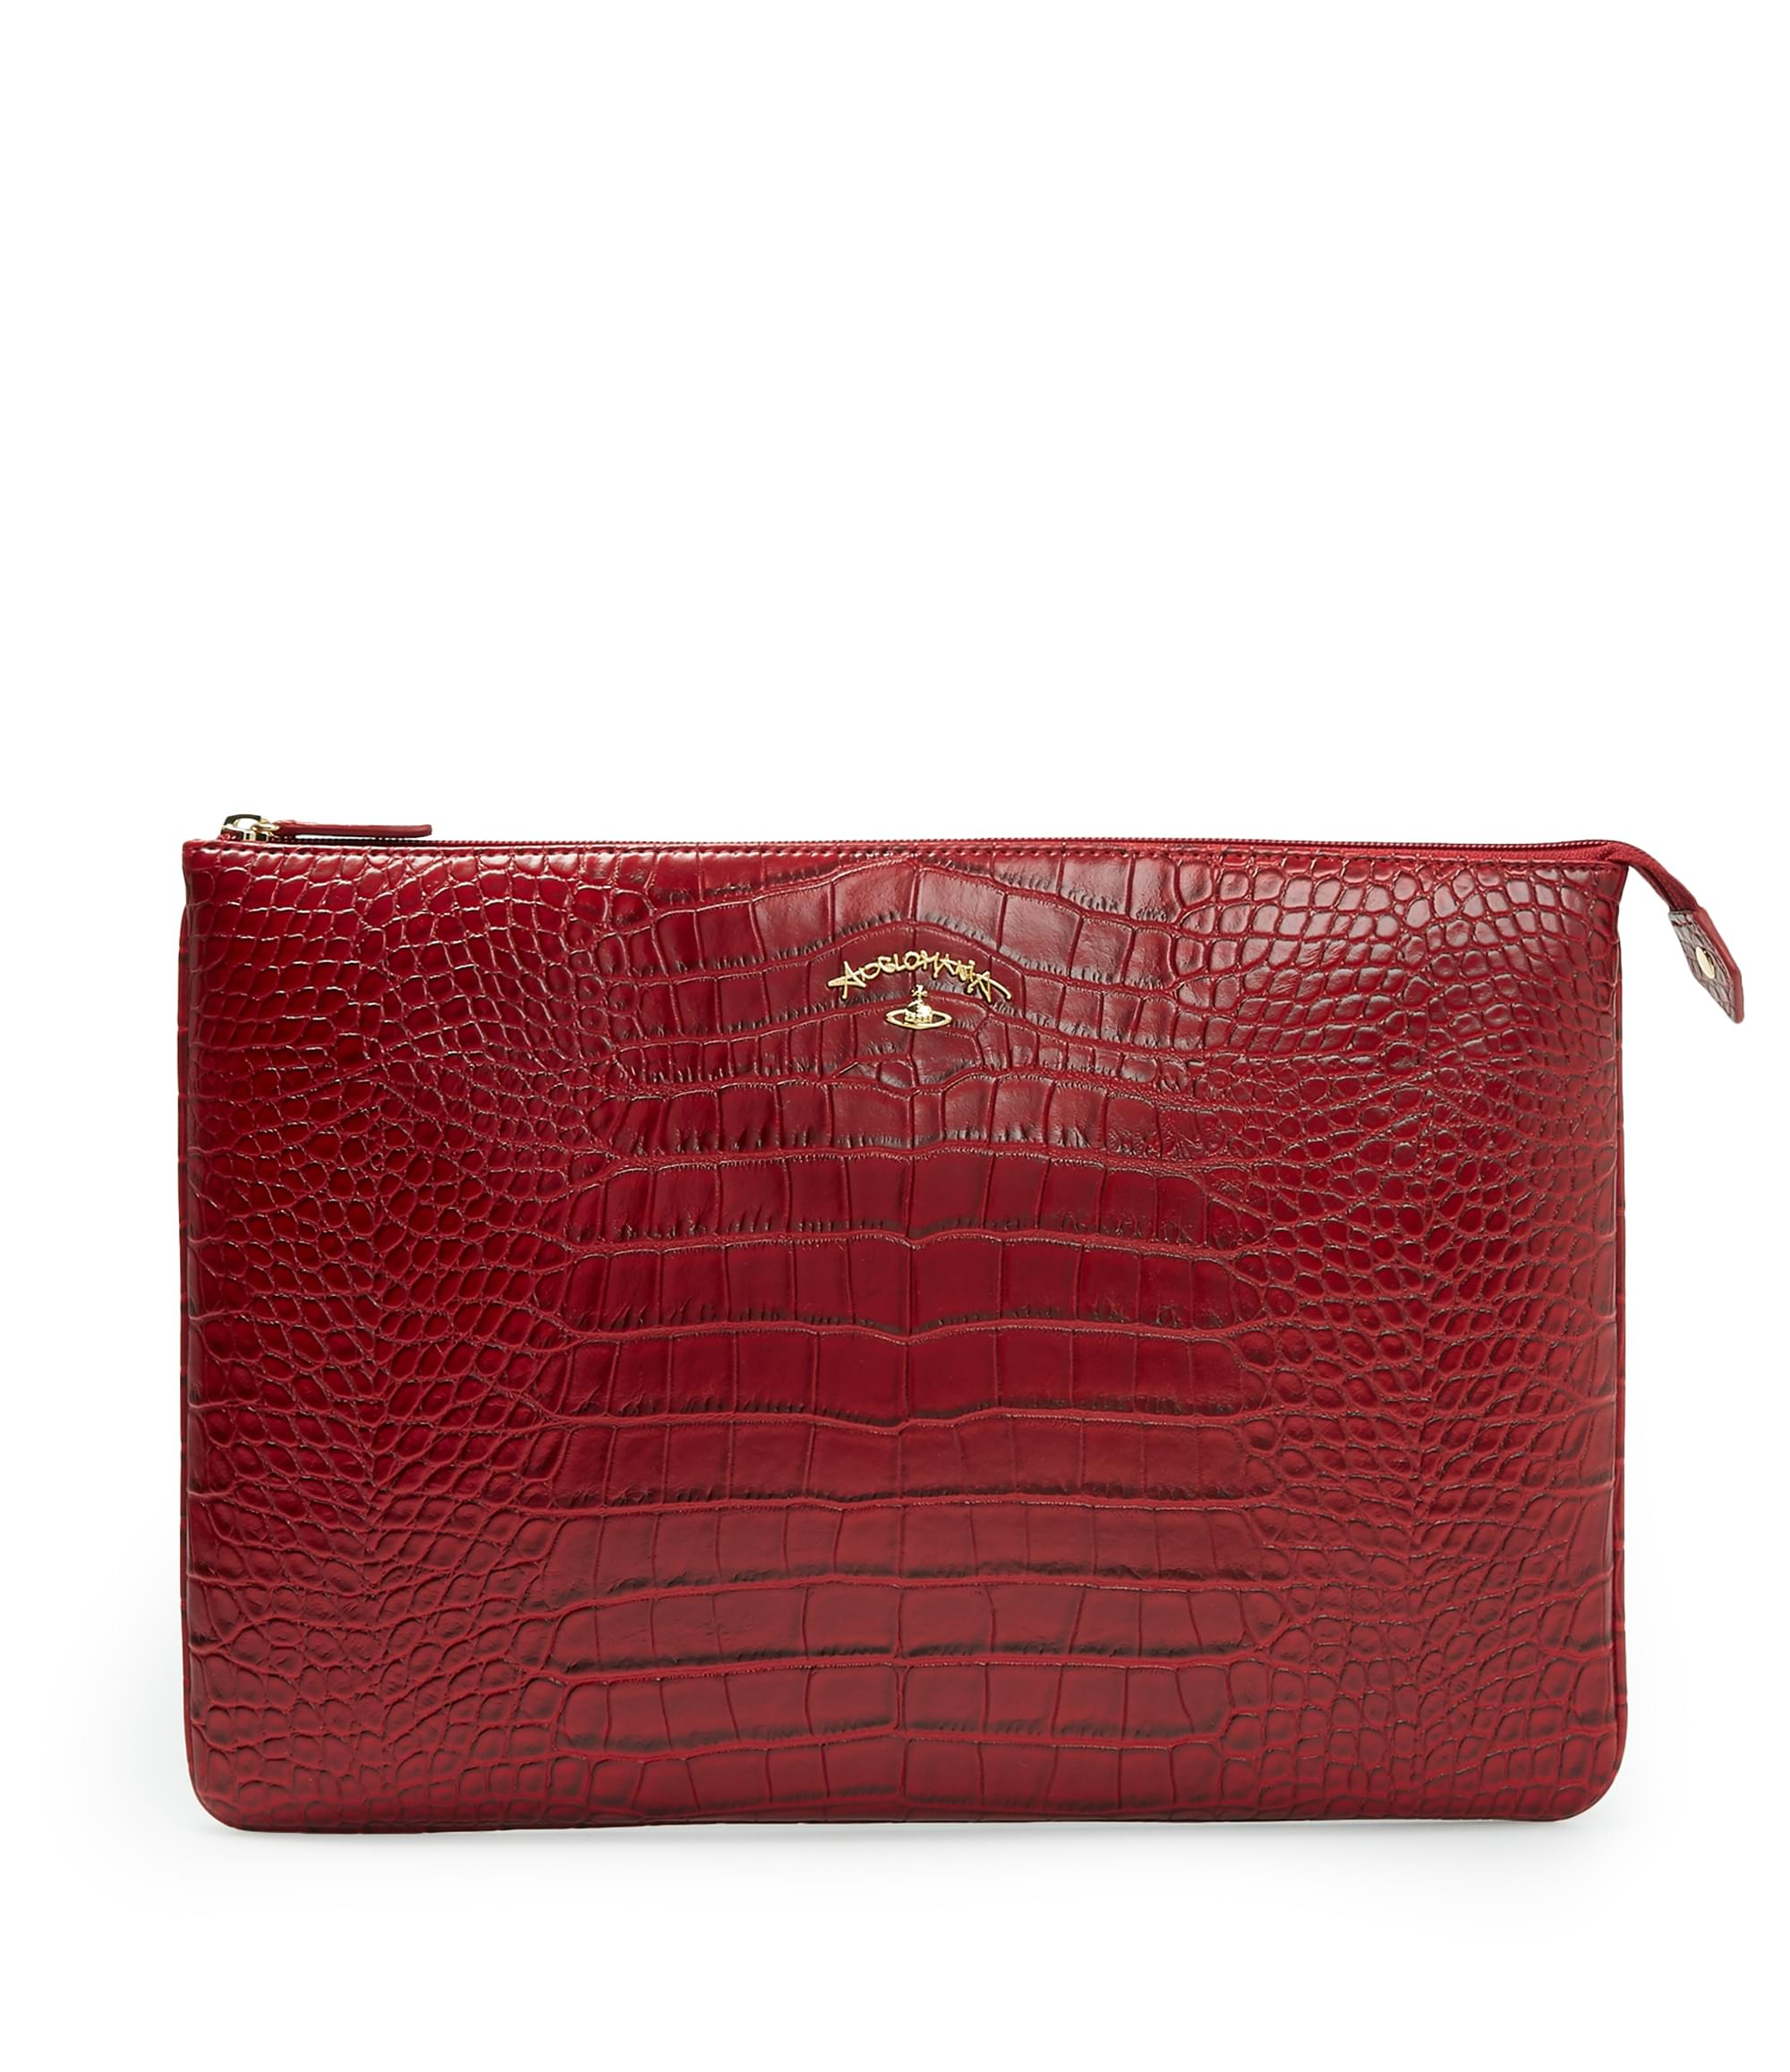 Vivienne Westwood Red Dorset Clutch Bag 6852